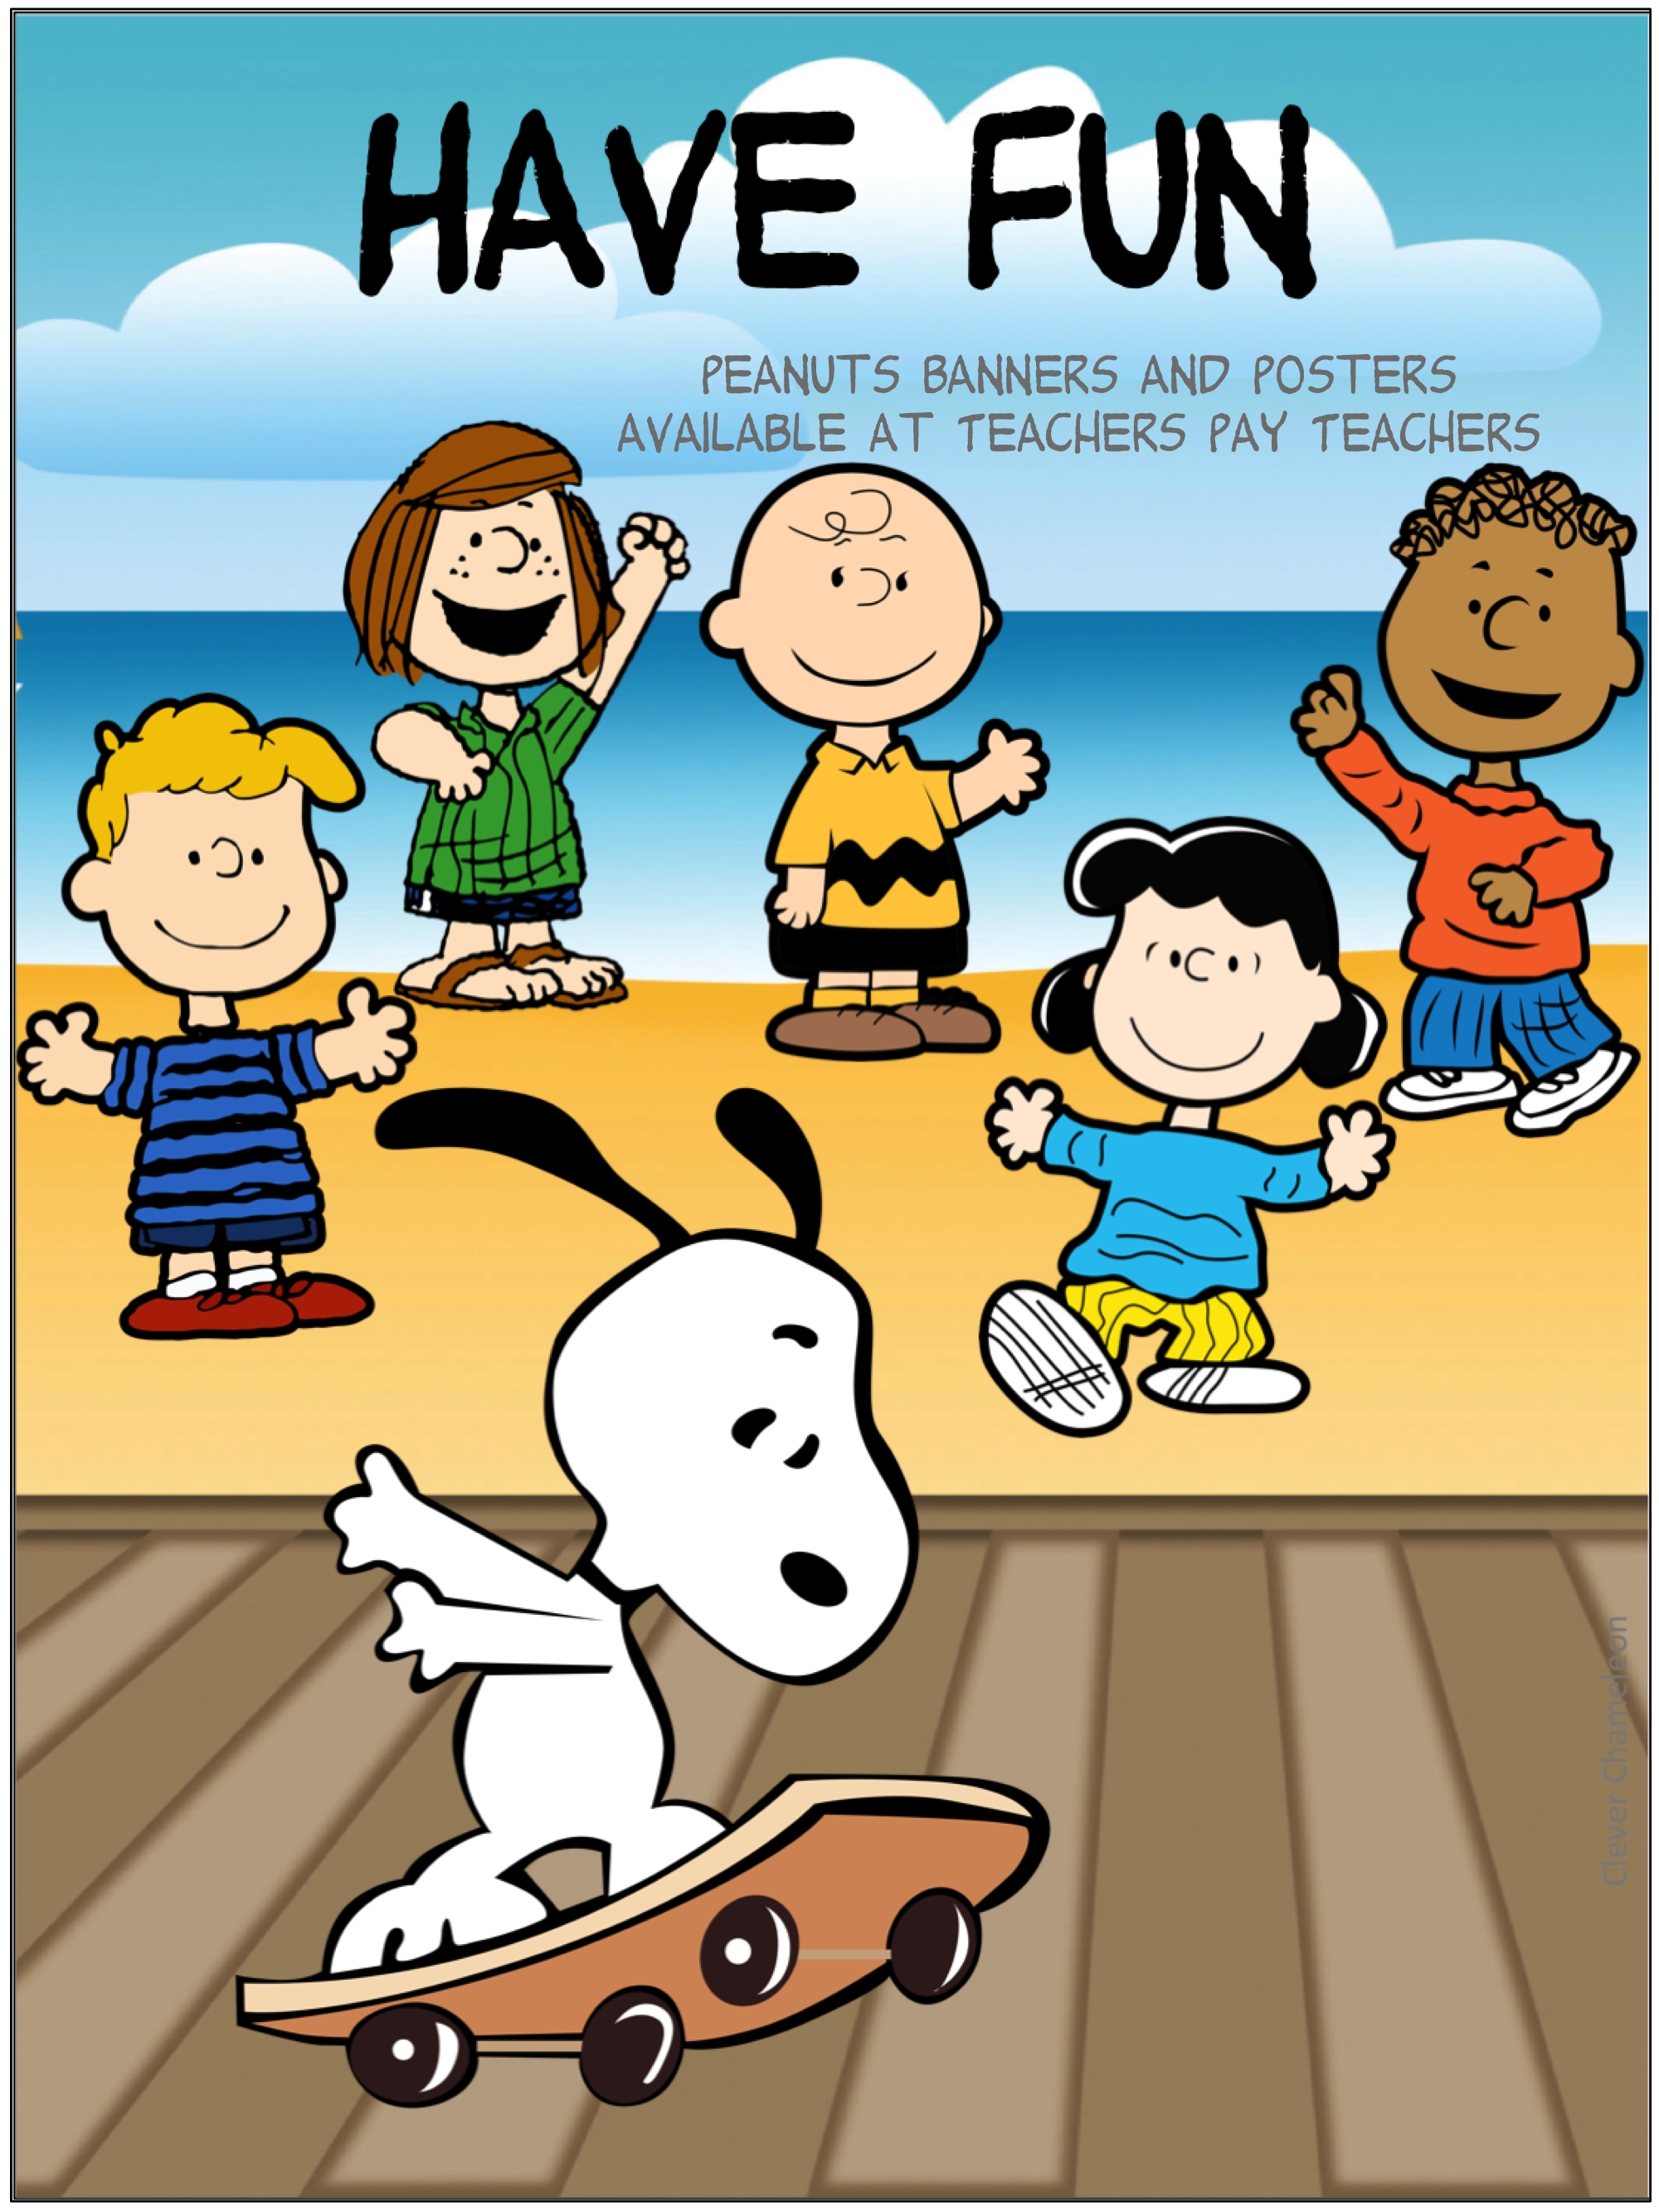 Have Fun Peanuts Gang Friends Posters And Banners For